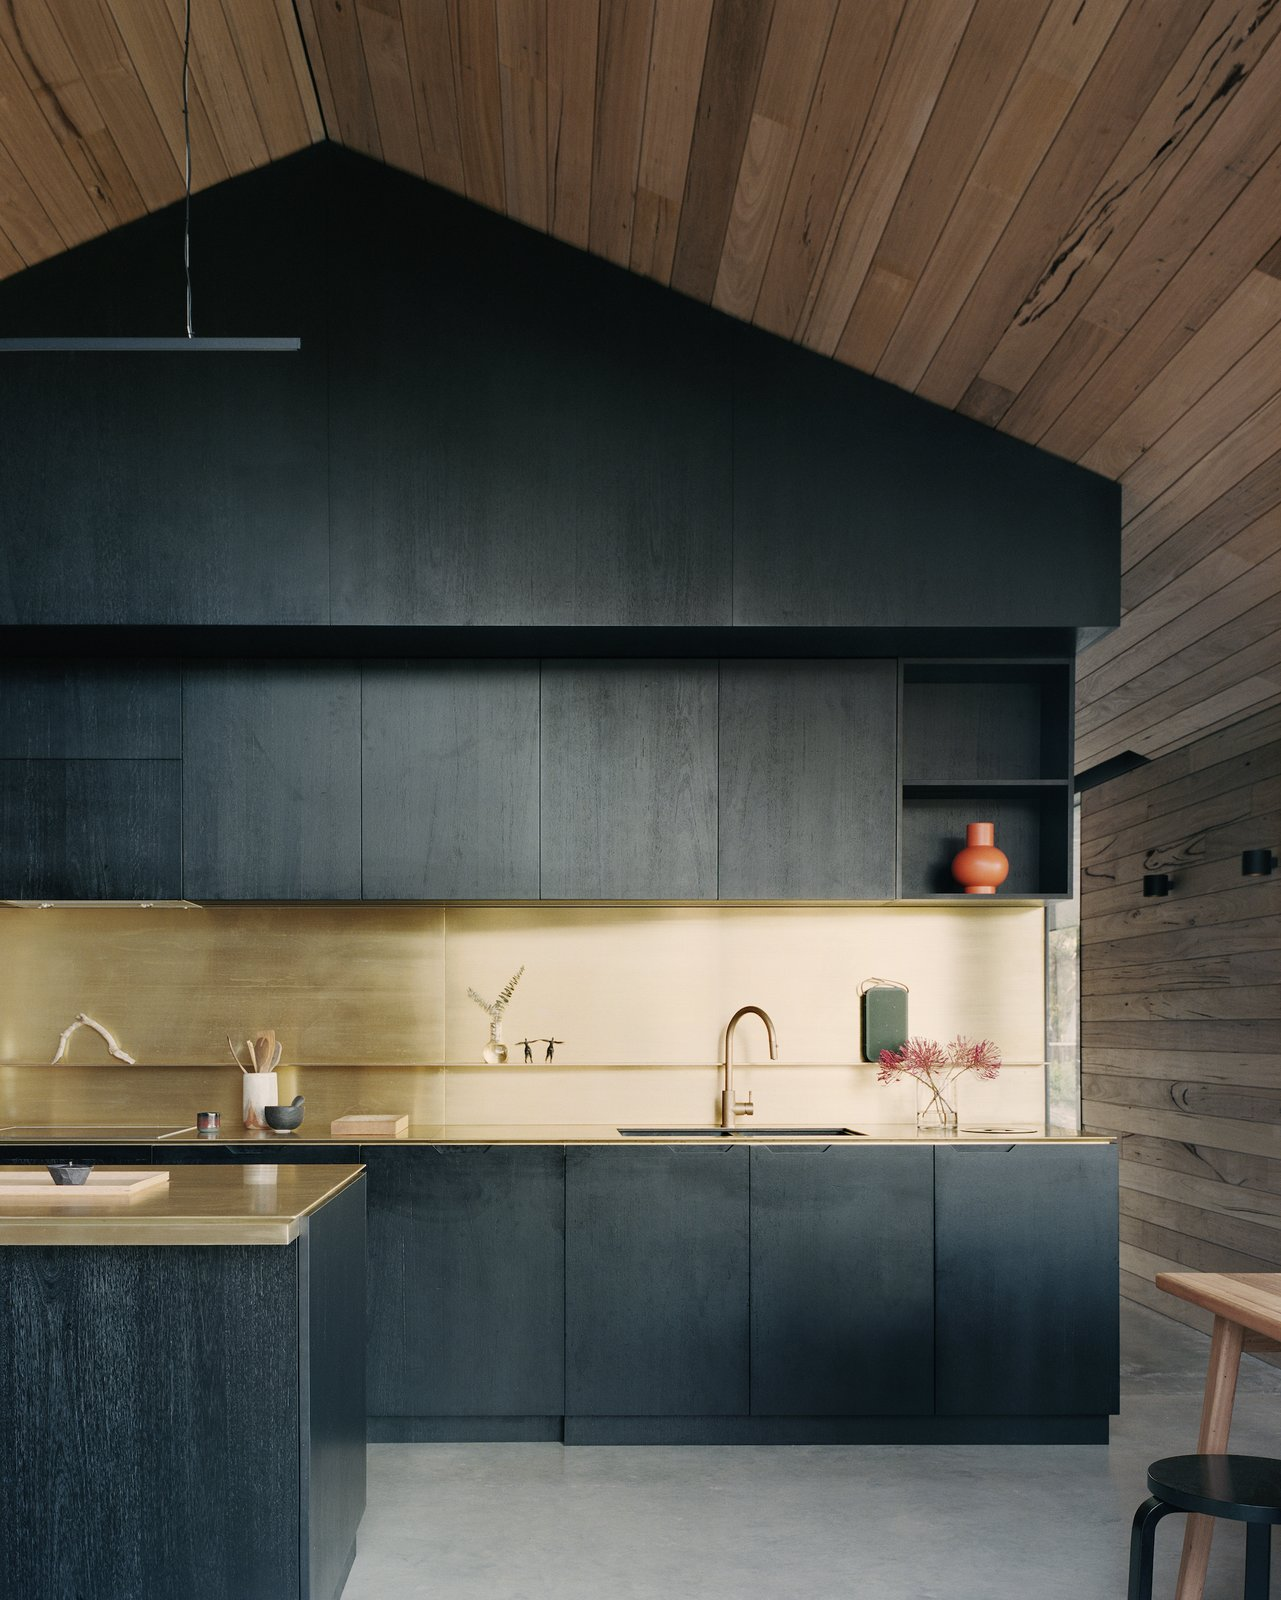 Kitchen of Two Sheds by Dreamer.